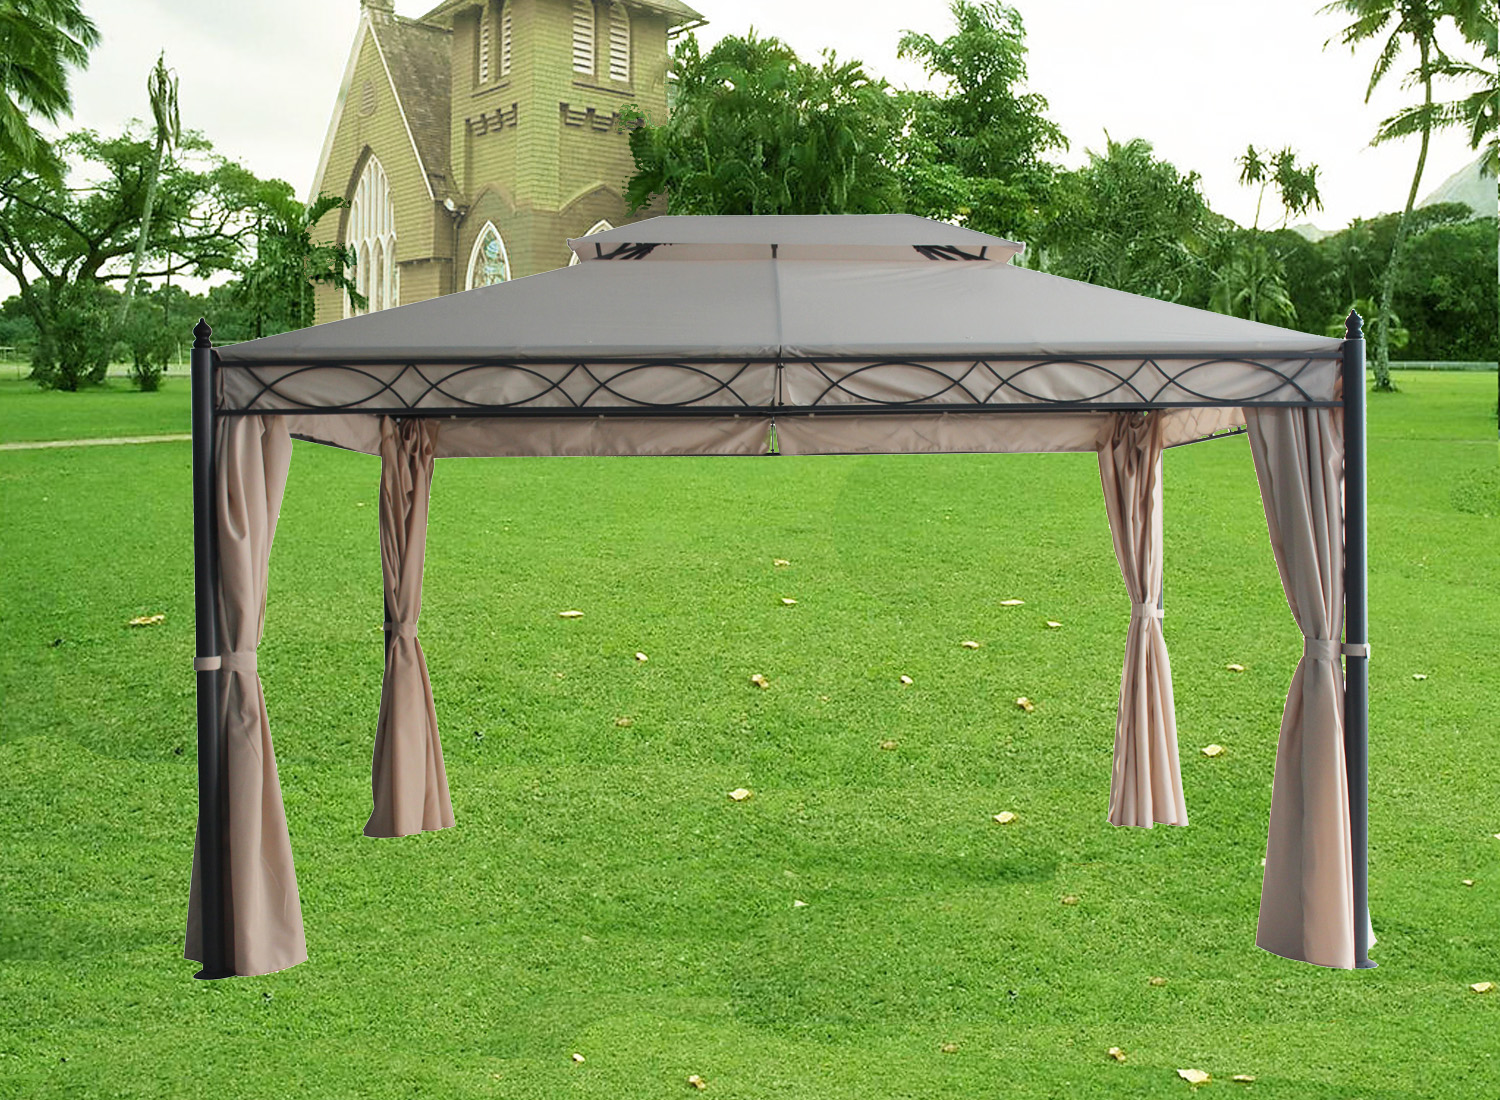 3 x 4m deluxe metal gazebo pavilion awning canopy sun. Black Bedroom Furniture Sets. Home Design Ideas